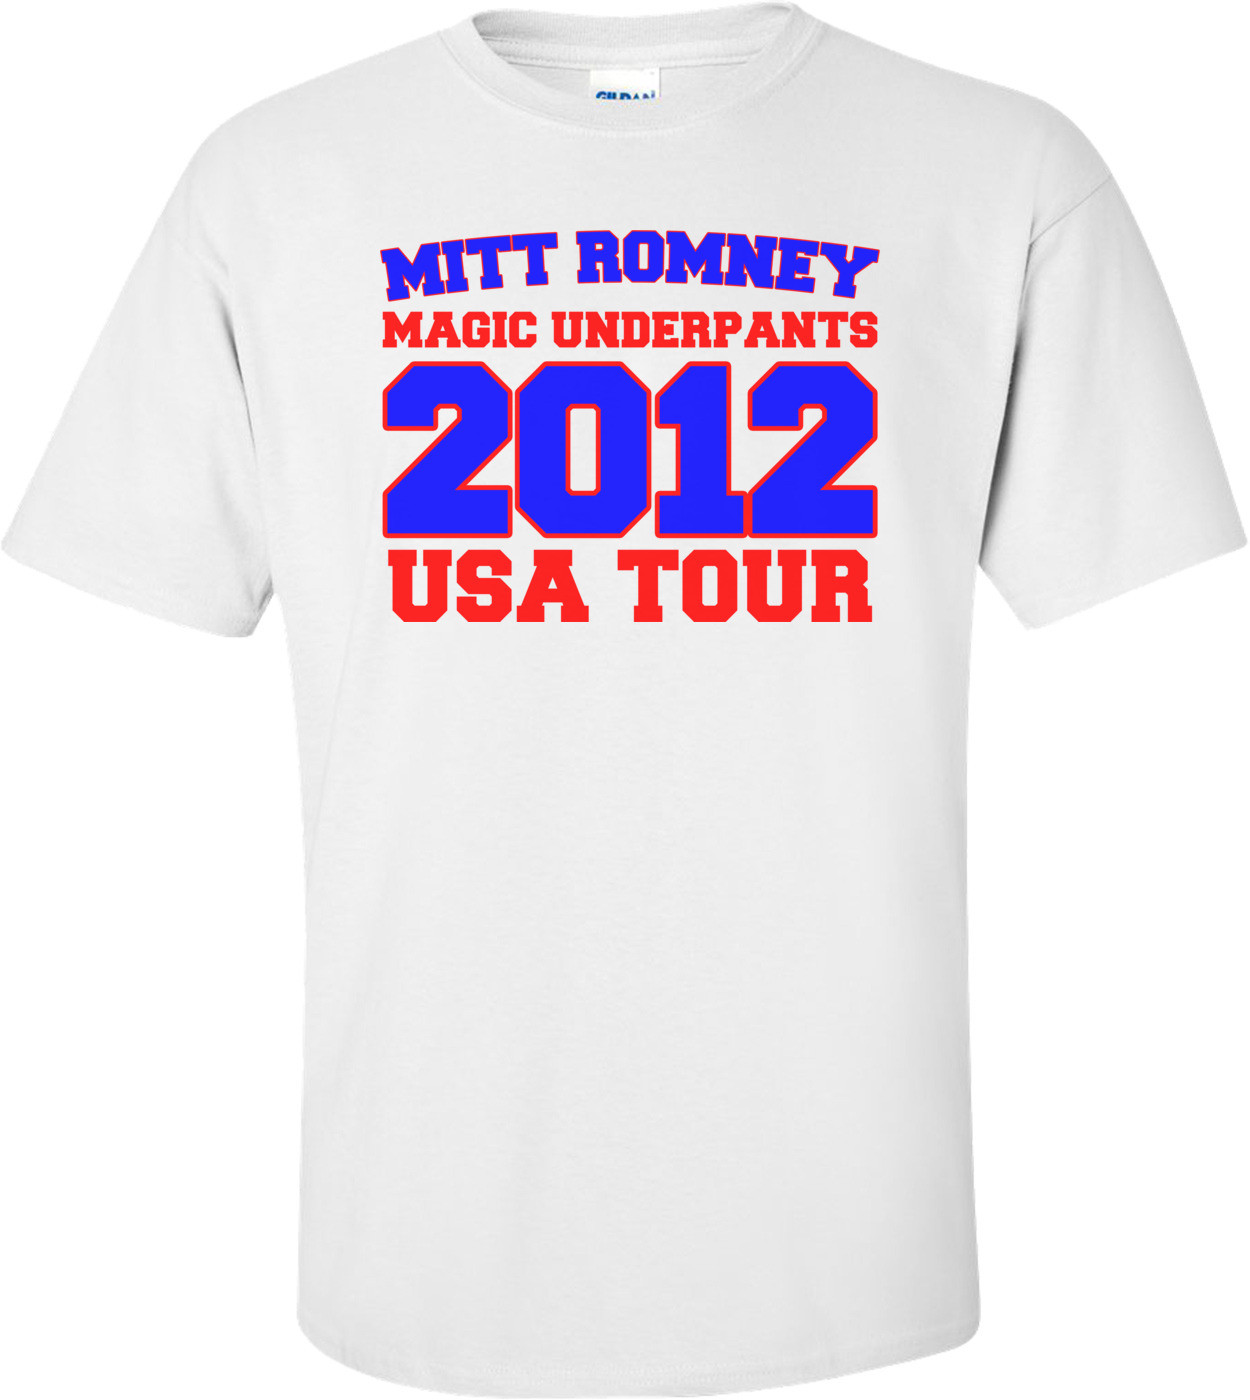 Mitt Romney Magic Underpants 2012 Usa Tour - Anti Mitt Romney Shirt